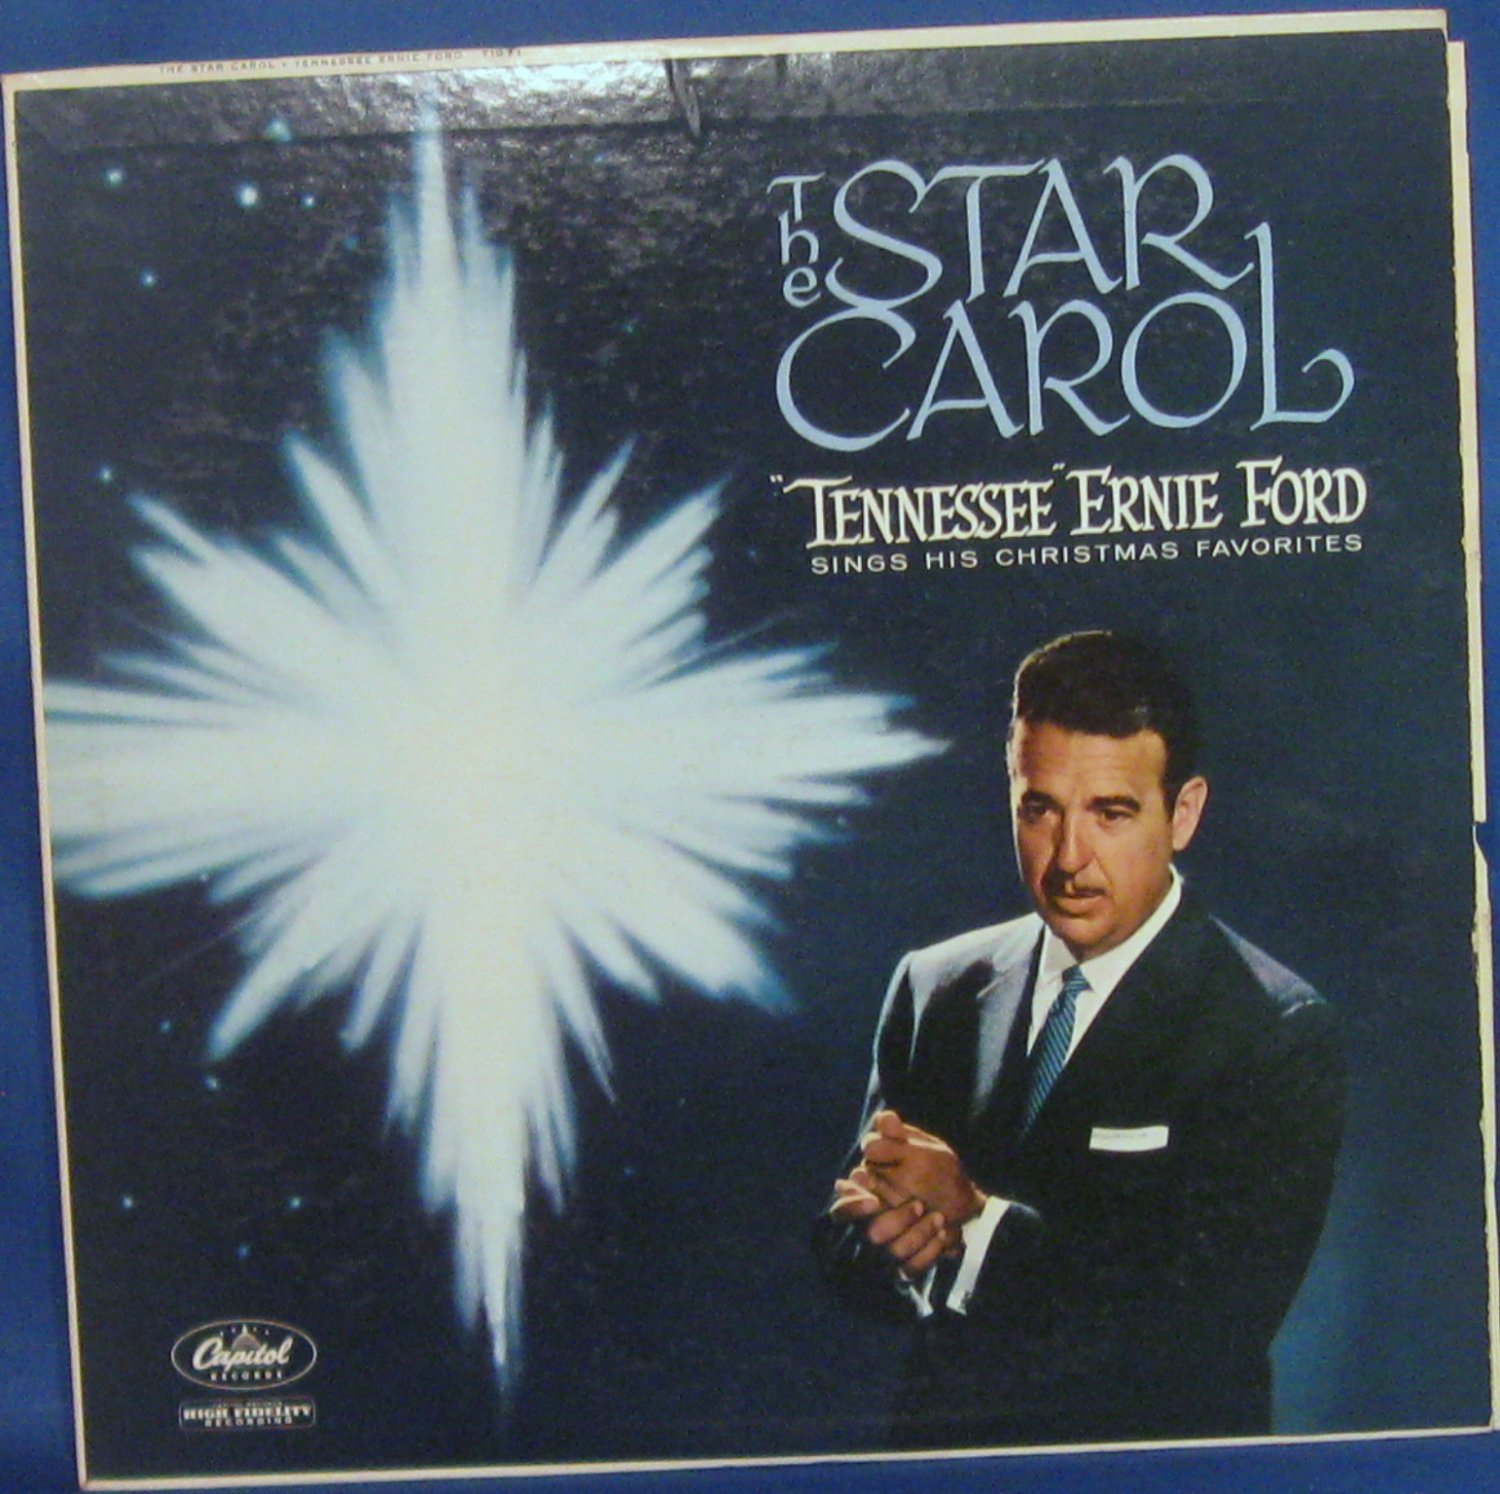 "The Star Carol ""Tennessee"" Ernie Ford Sings His Christmas Favorites - Vinyl LP"